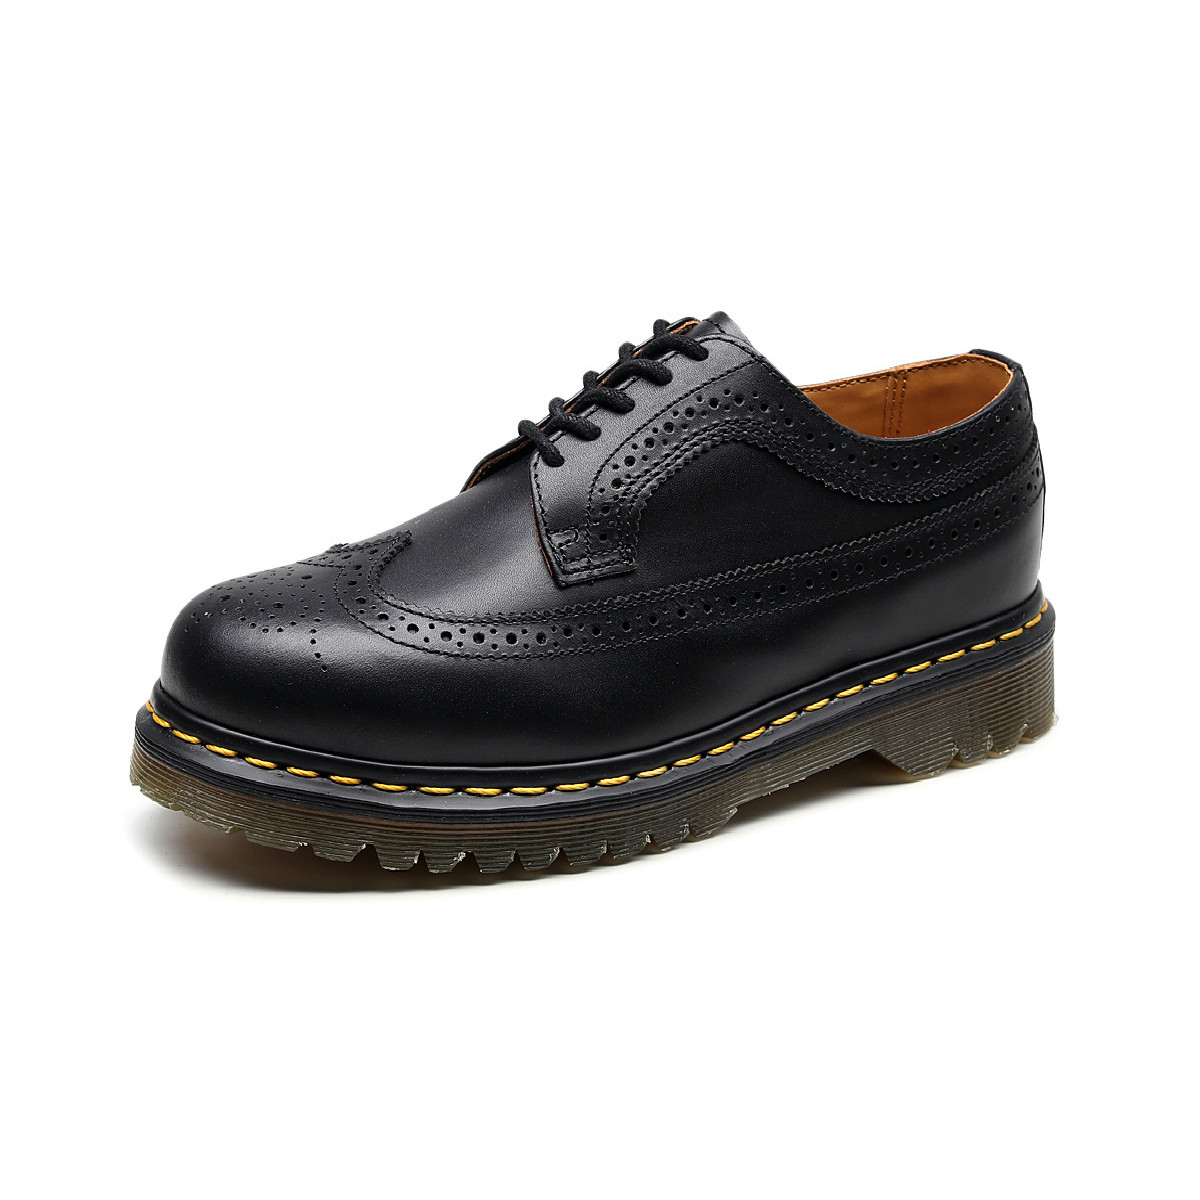 Women Men Couple Shoes Genuine Leather Round Toe Flats Heel Embroidered Brogue Boots Plus Size Dr Classic Martins Boots Martens